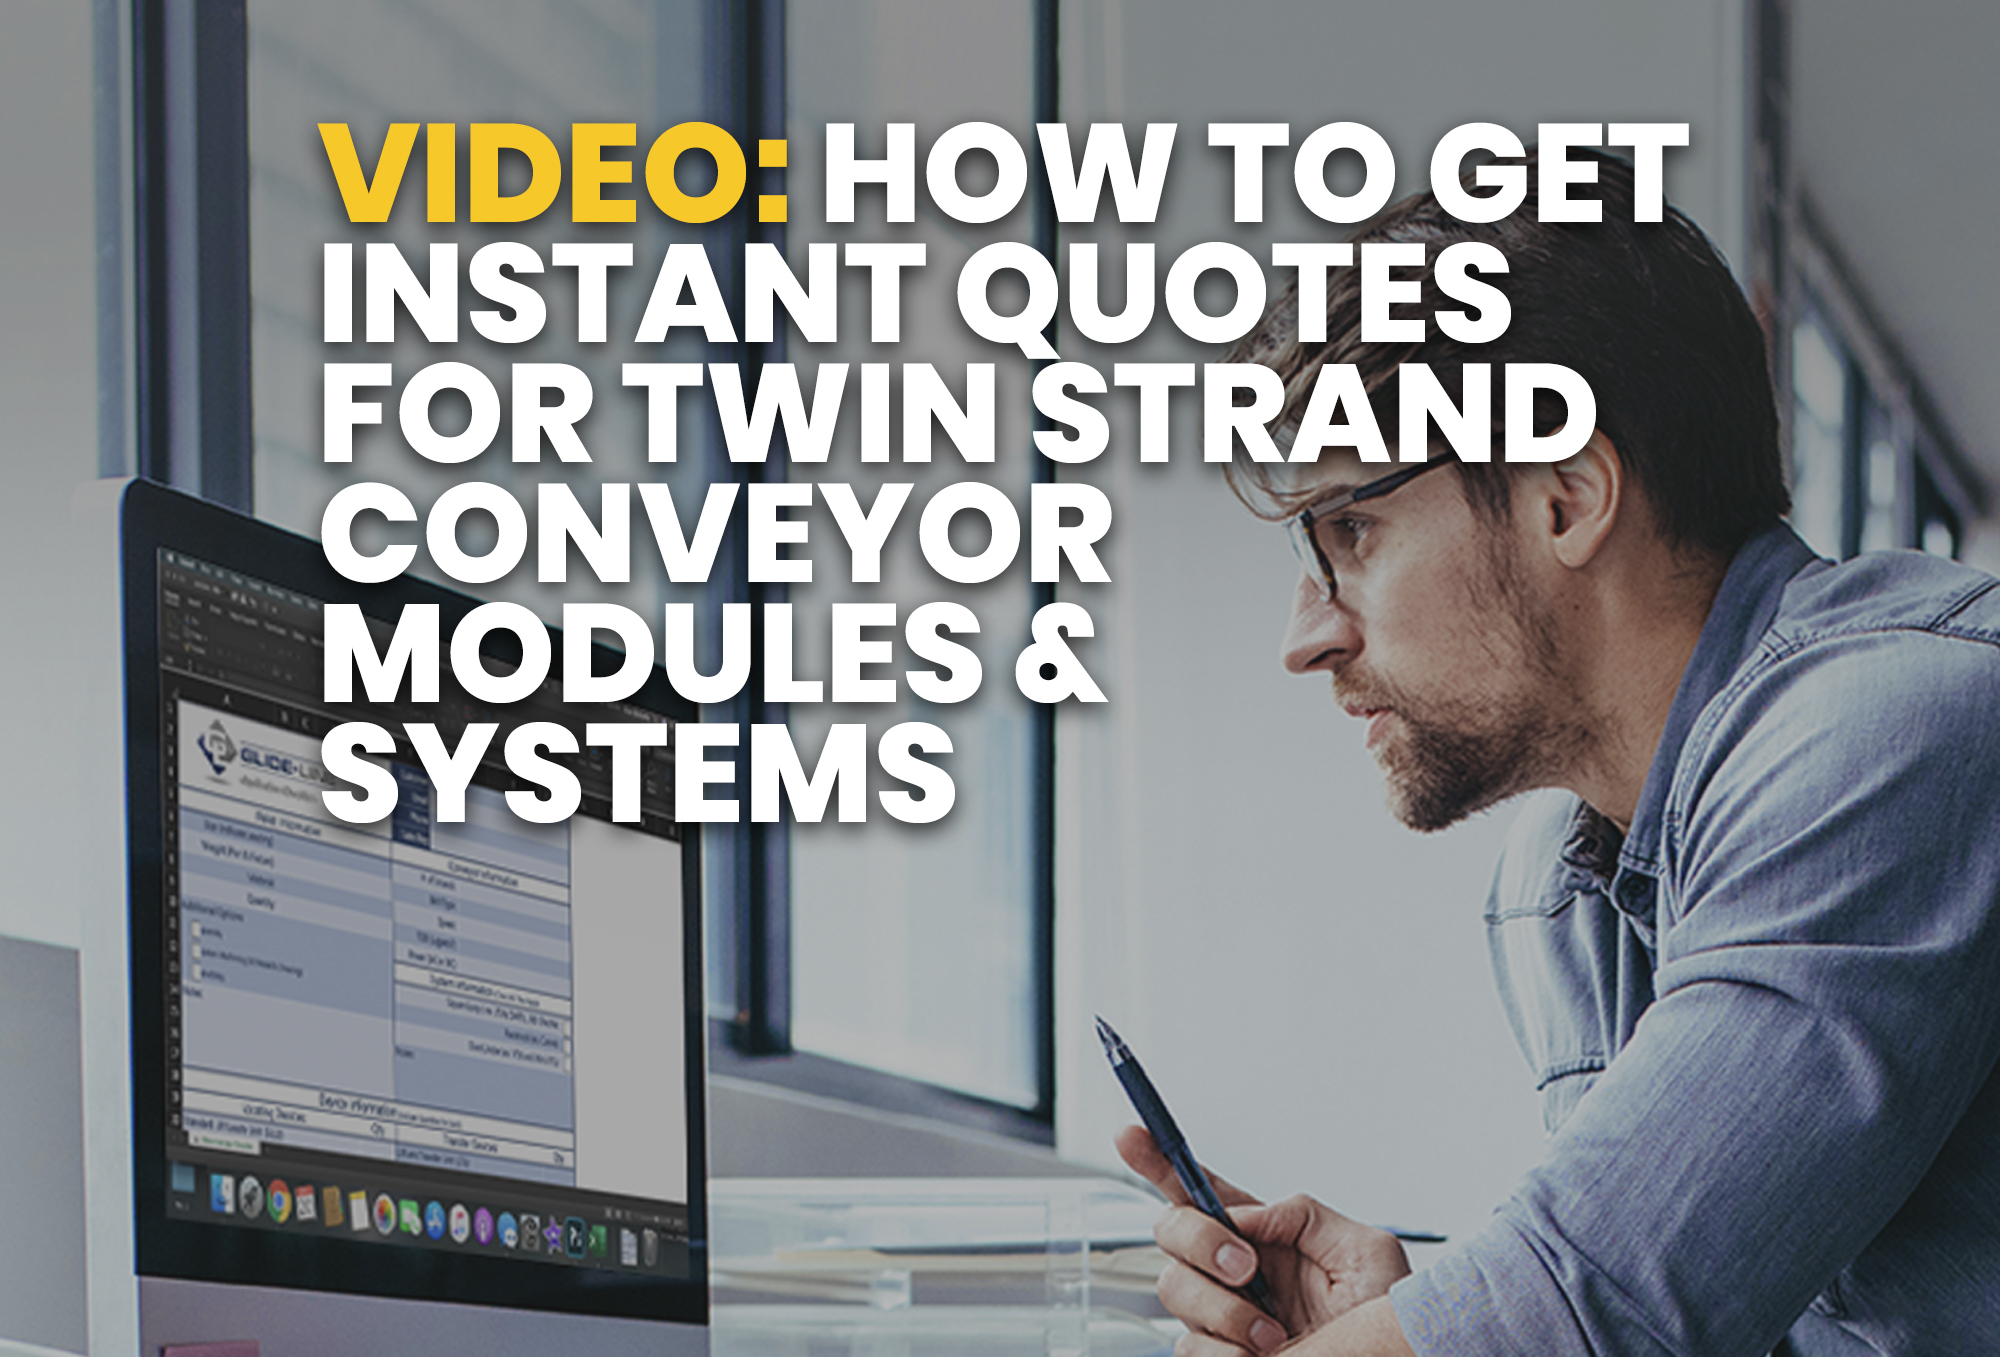 video- How To Get Instant Quotes For Twin Strand Conveyor Modules & Systems